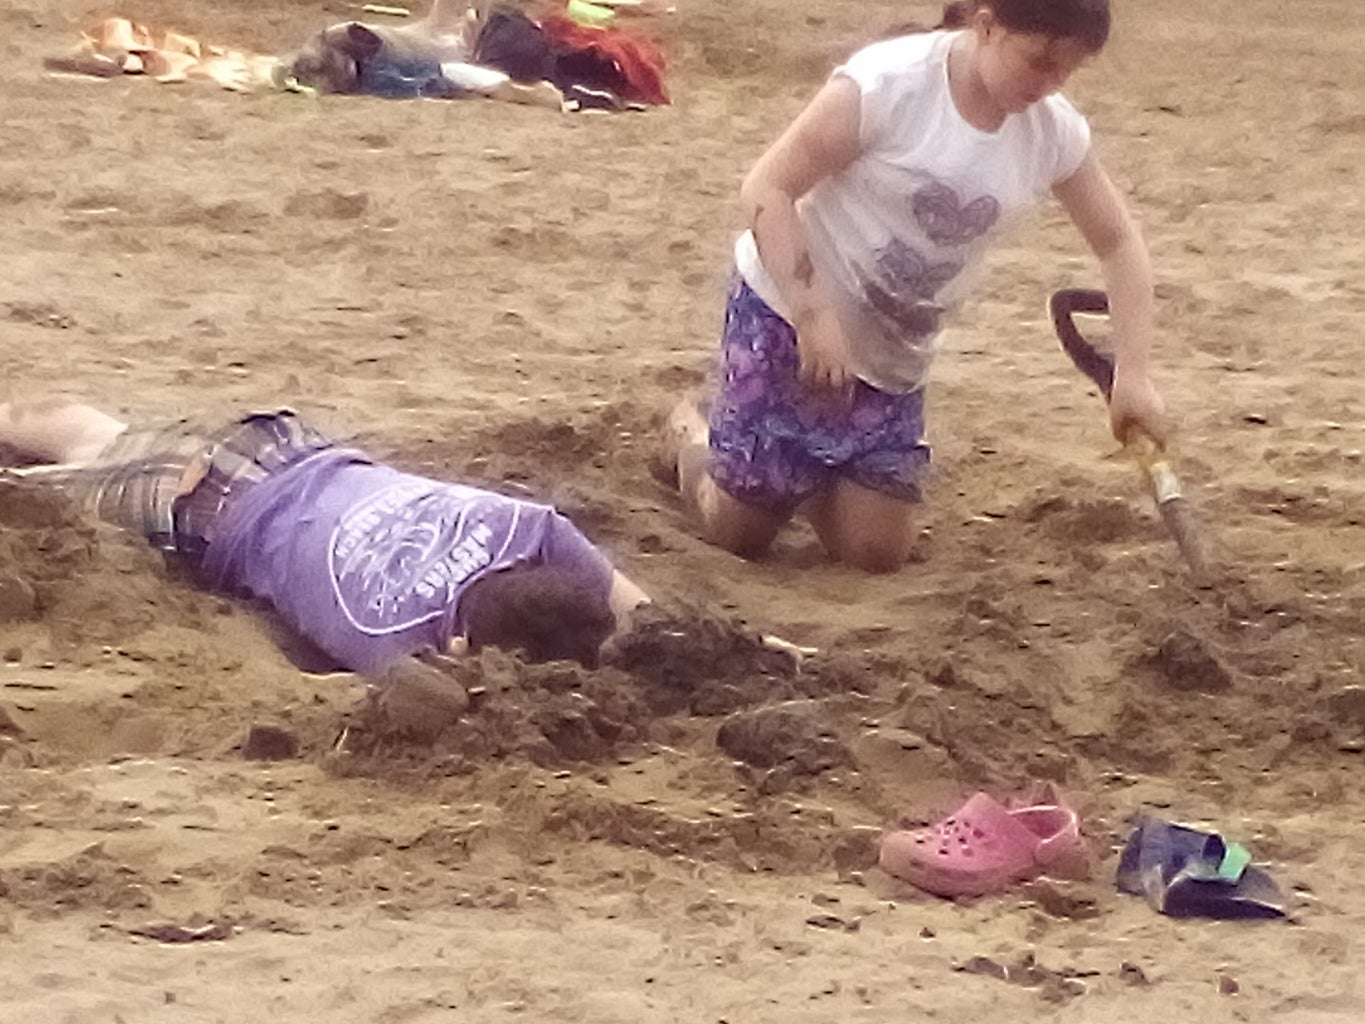 Get a Friend or Sister to Dig More......